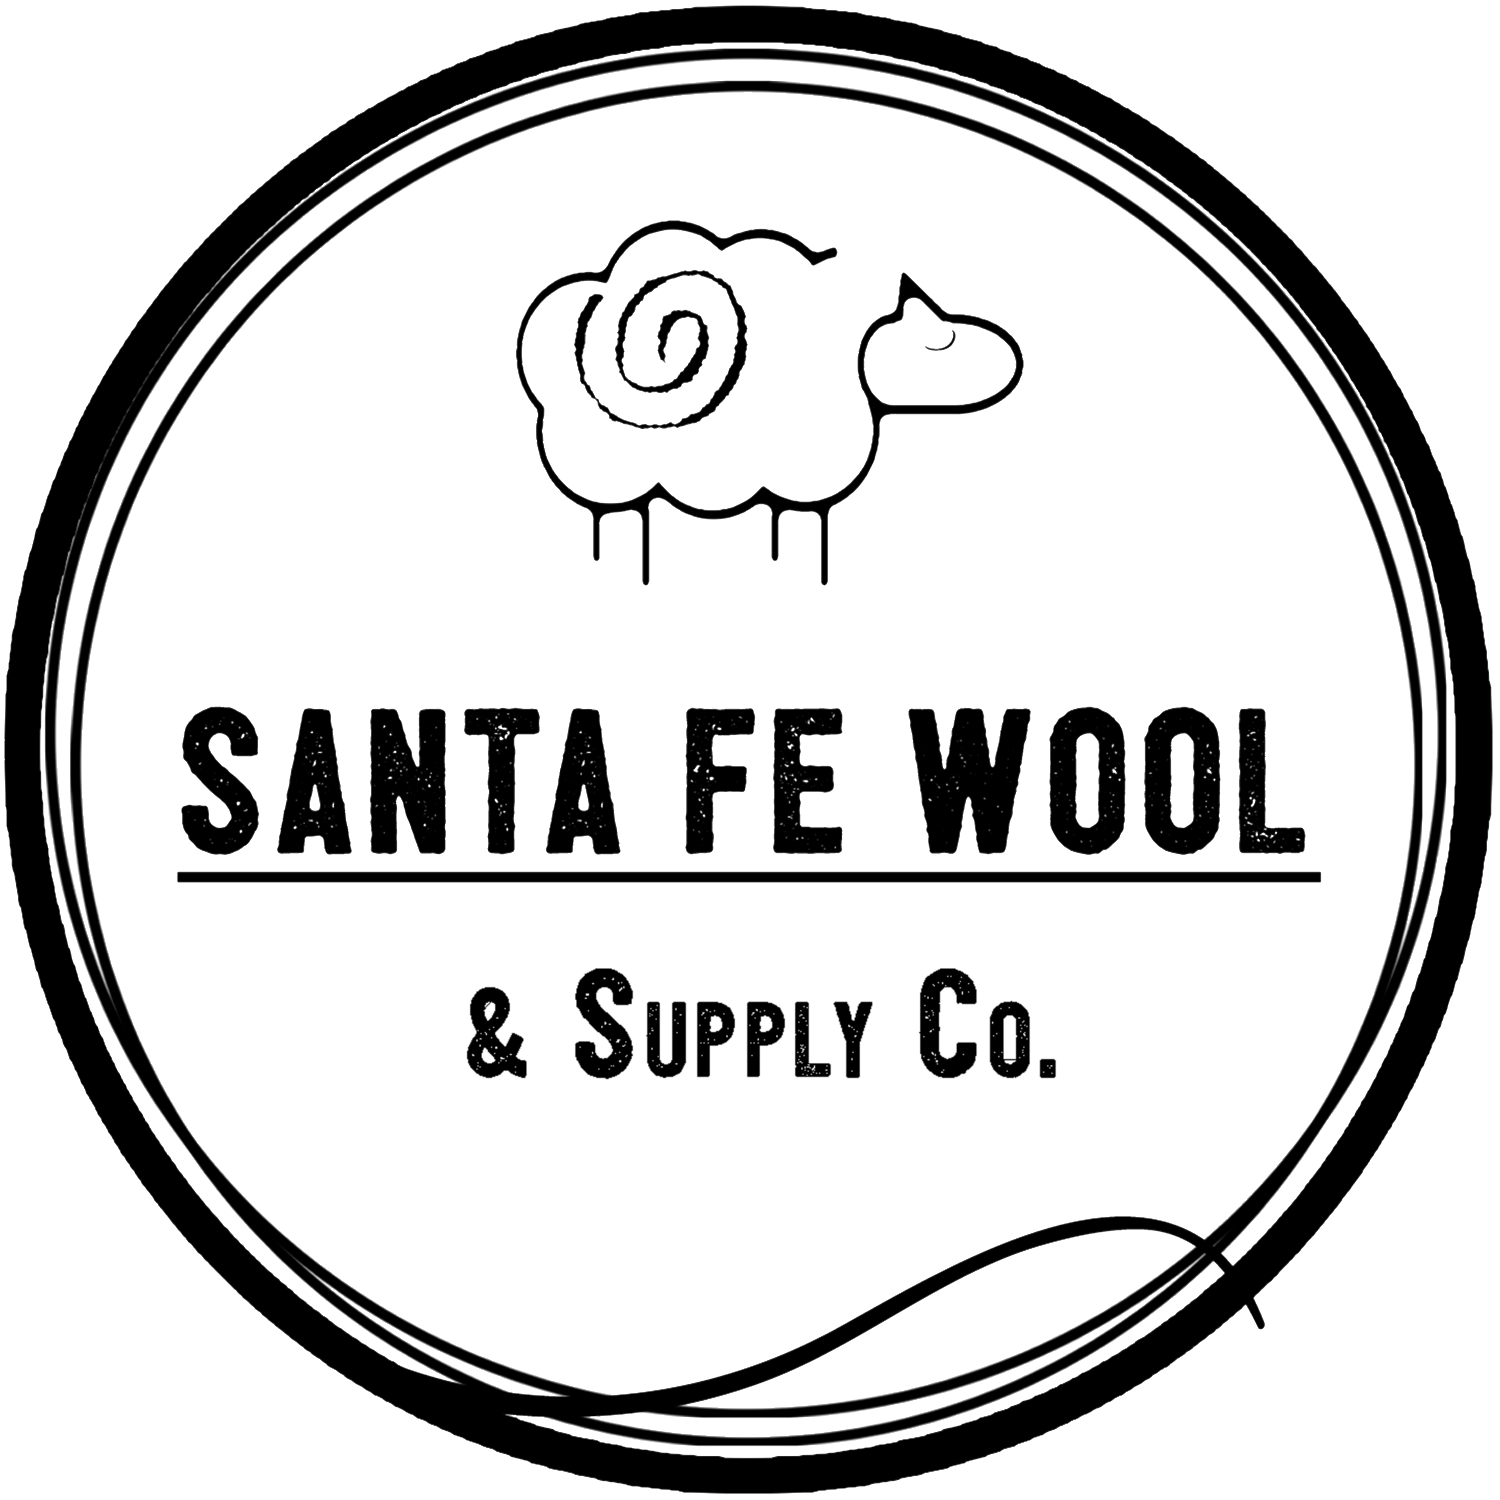 Santa Fe Wool & Supply Co.